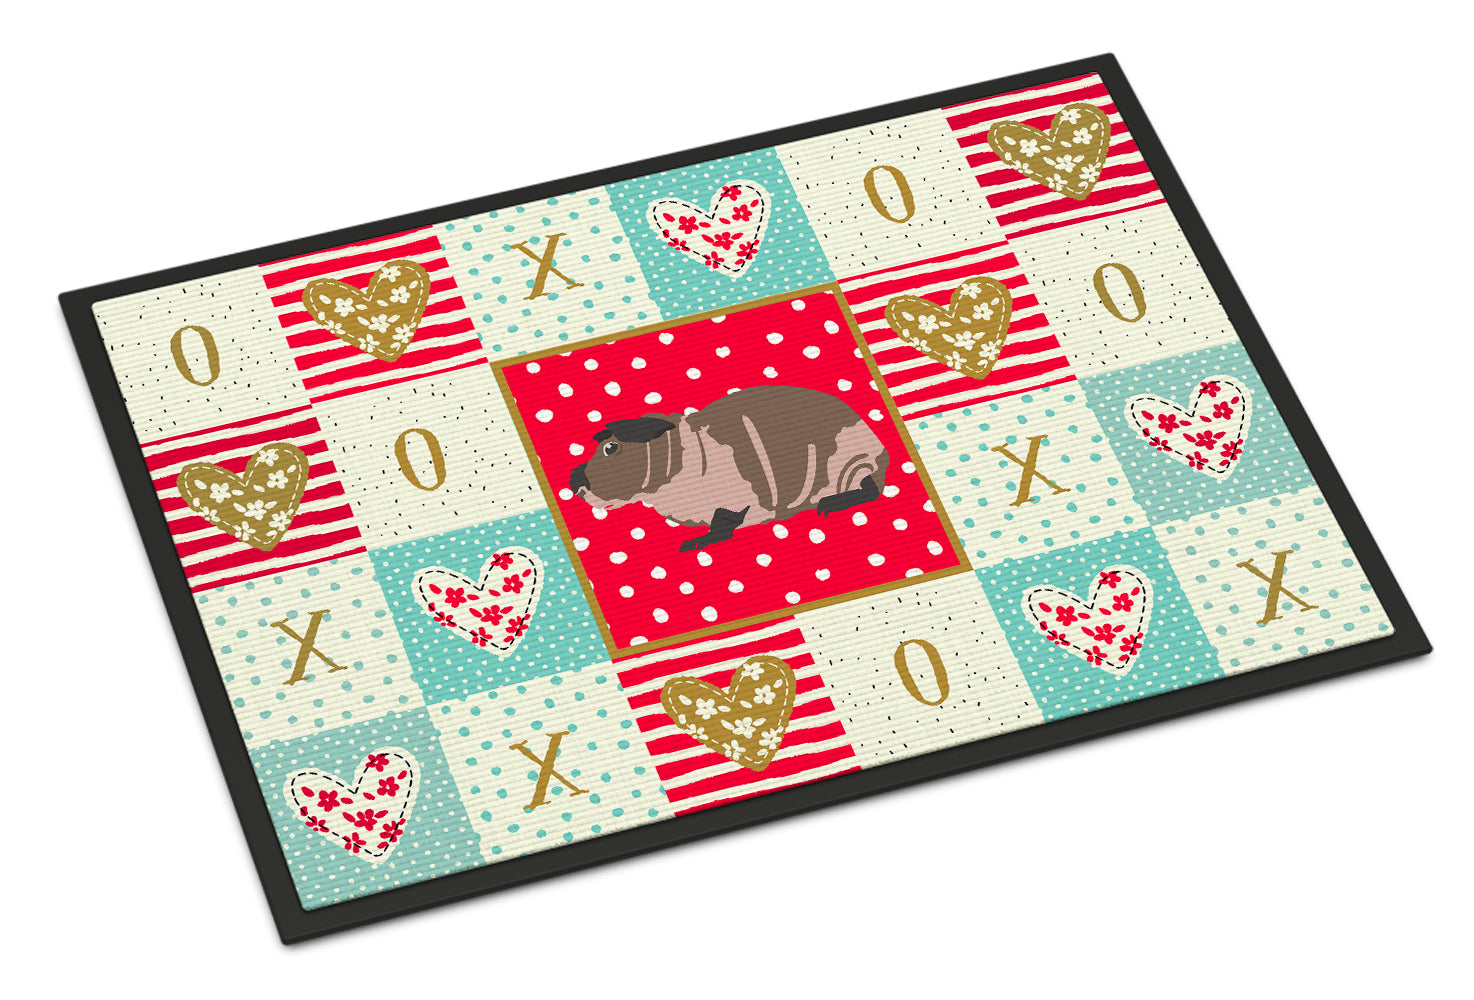 Skinny Guinea Pig Love Indoor or Outdoor Mat 18x27 CK5435MAT by Caroline's Treasures